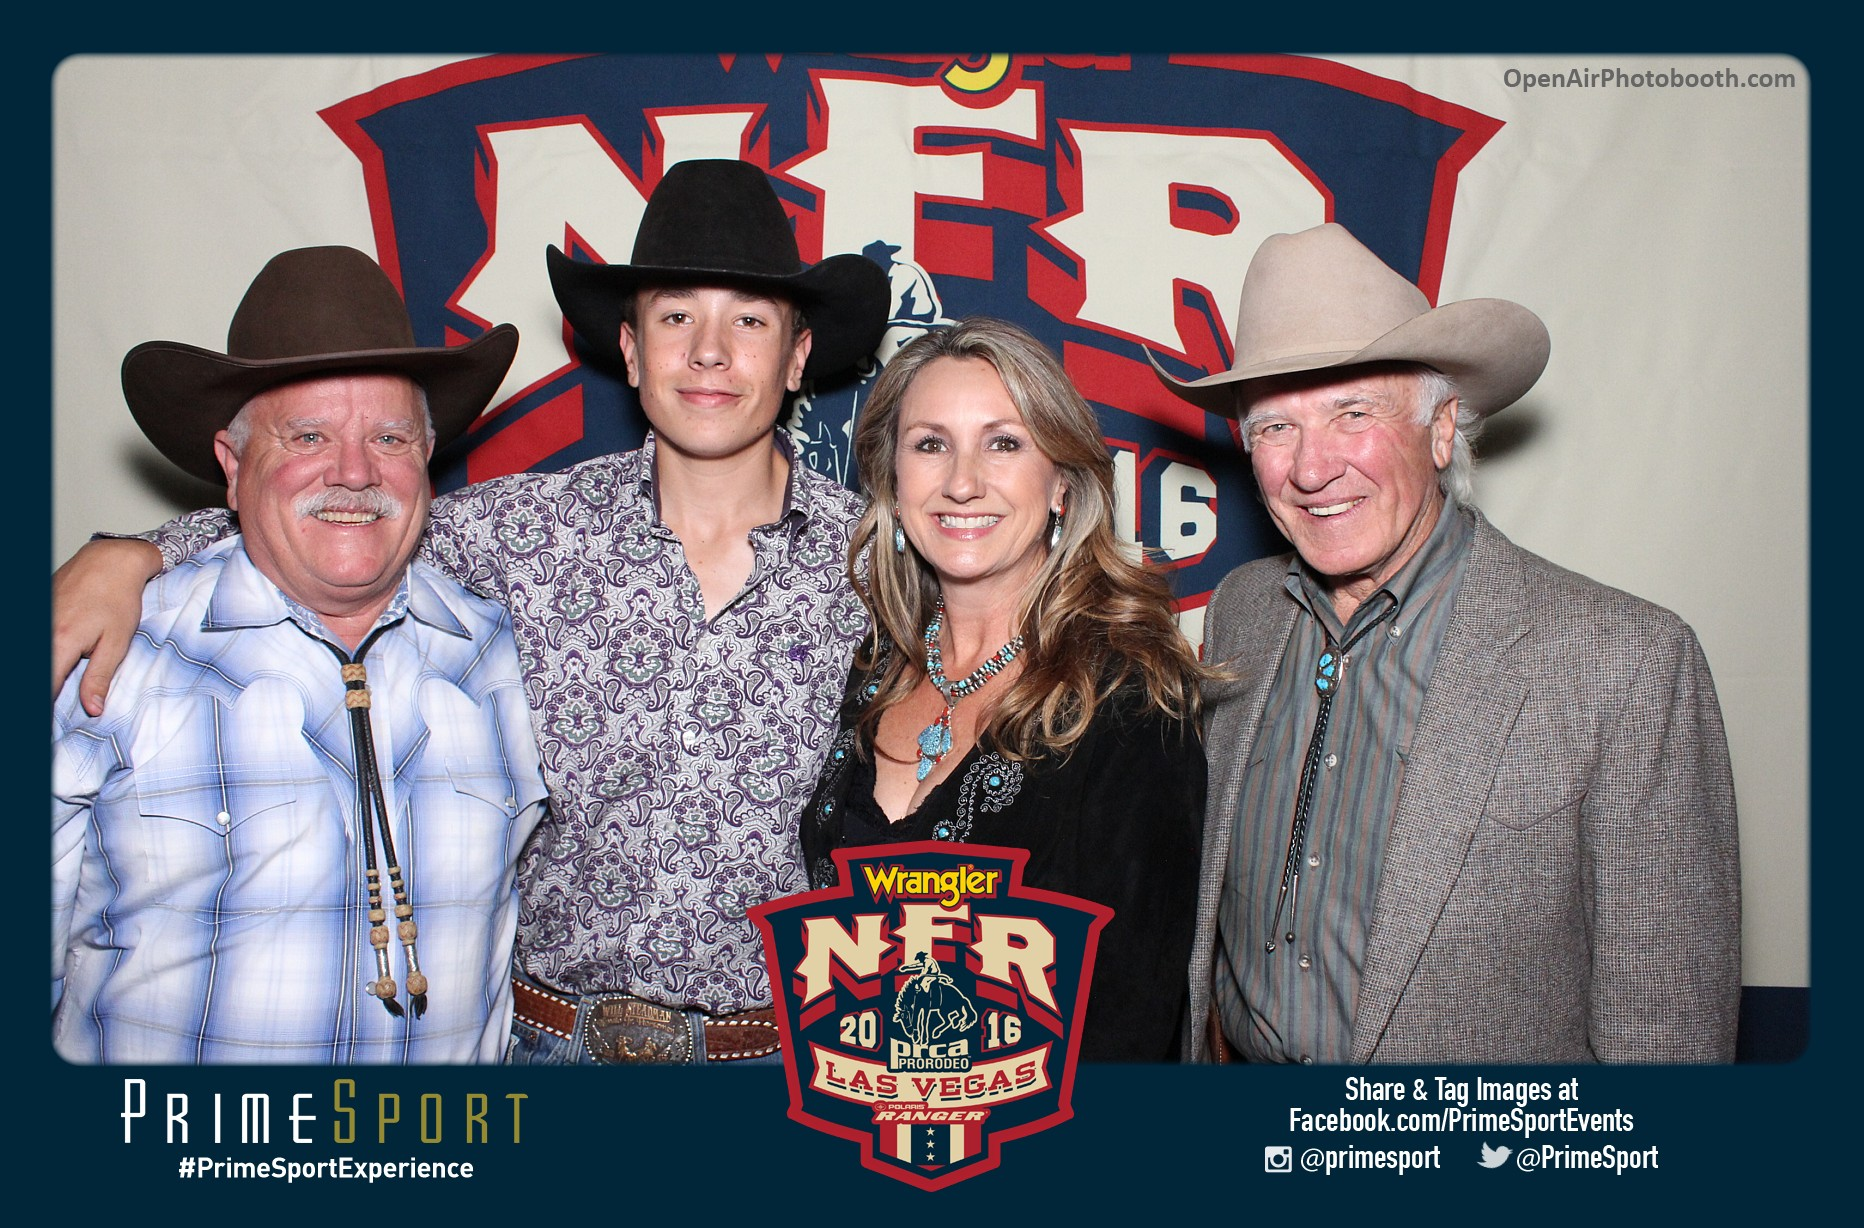 NFR Rodeo Open Air Photobooth